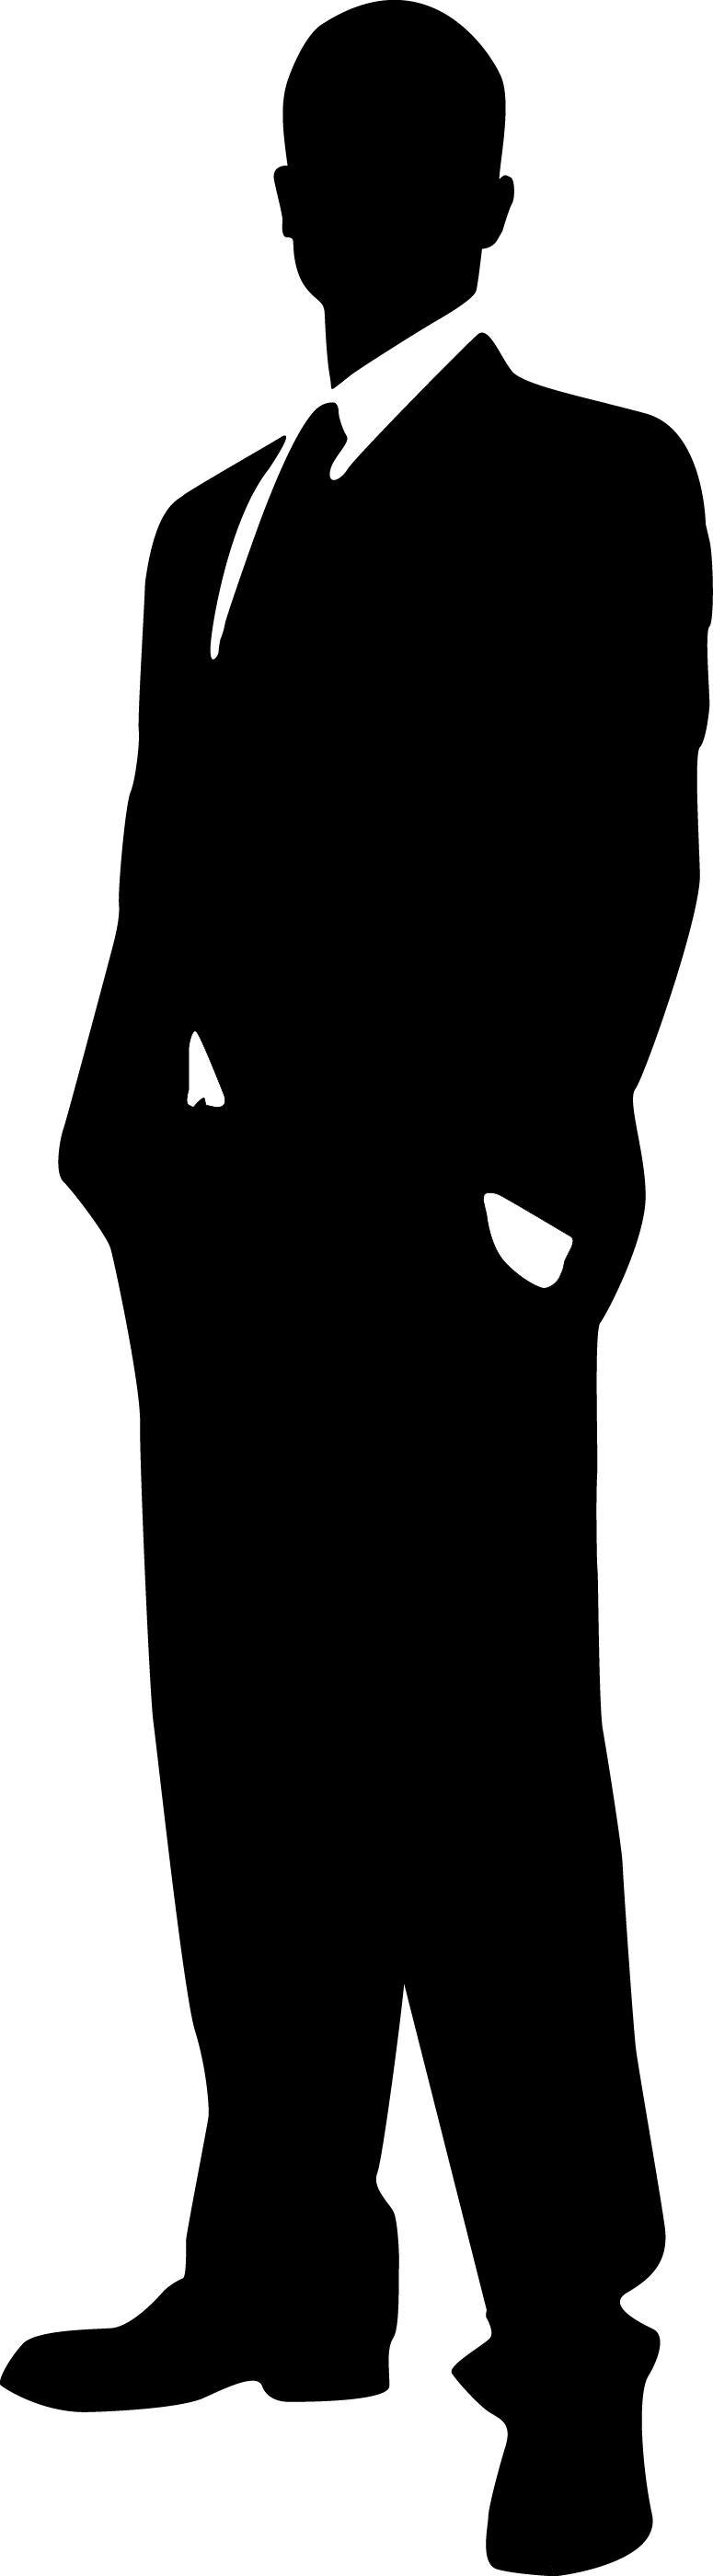 png freeuse library Man clipart black and white. Silhouette images at getdrawings.